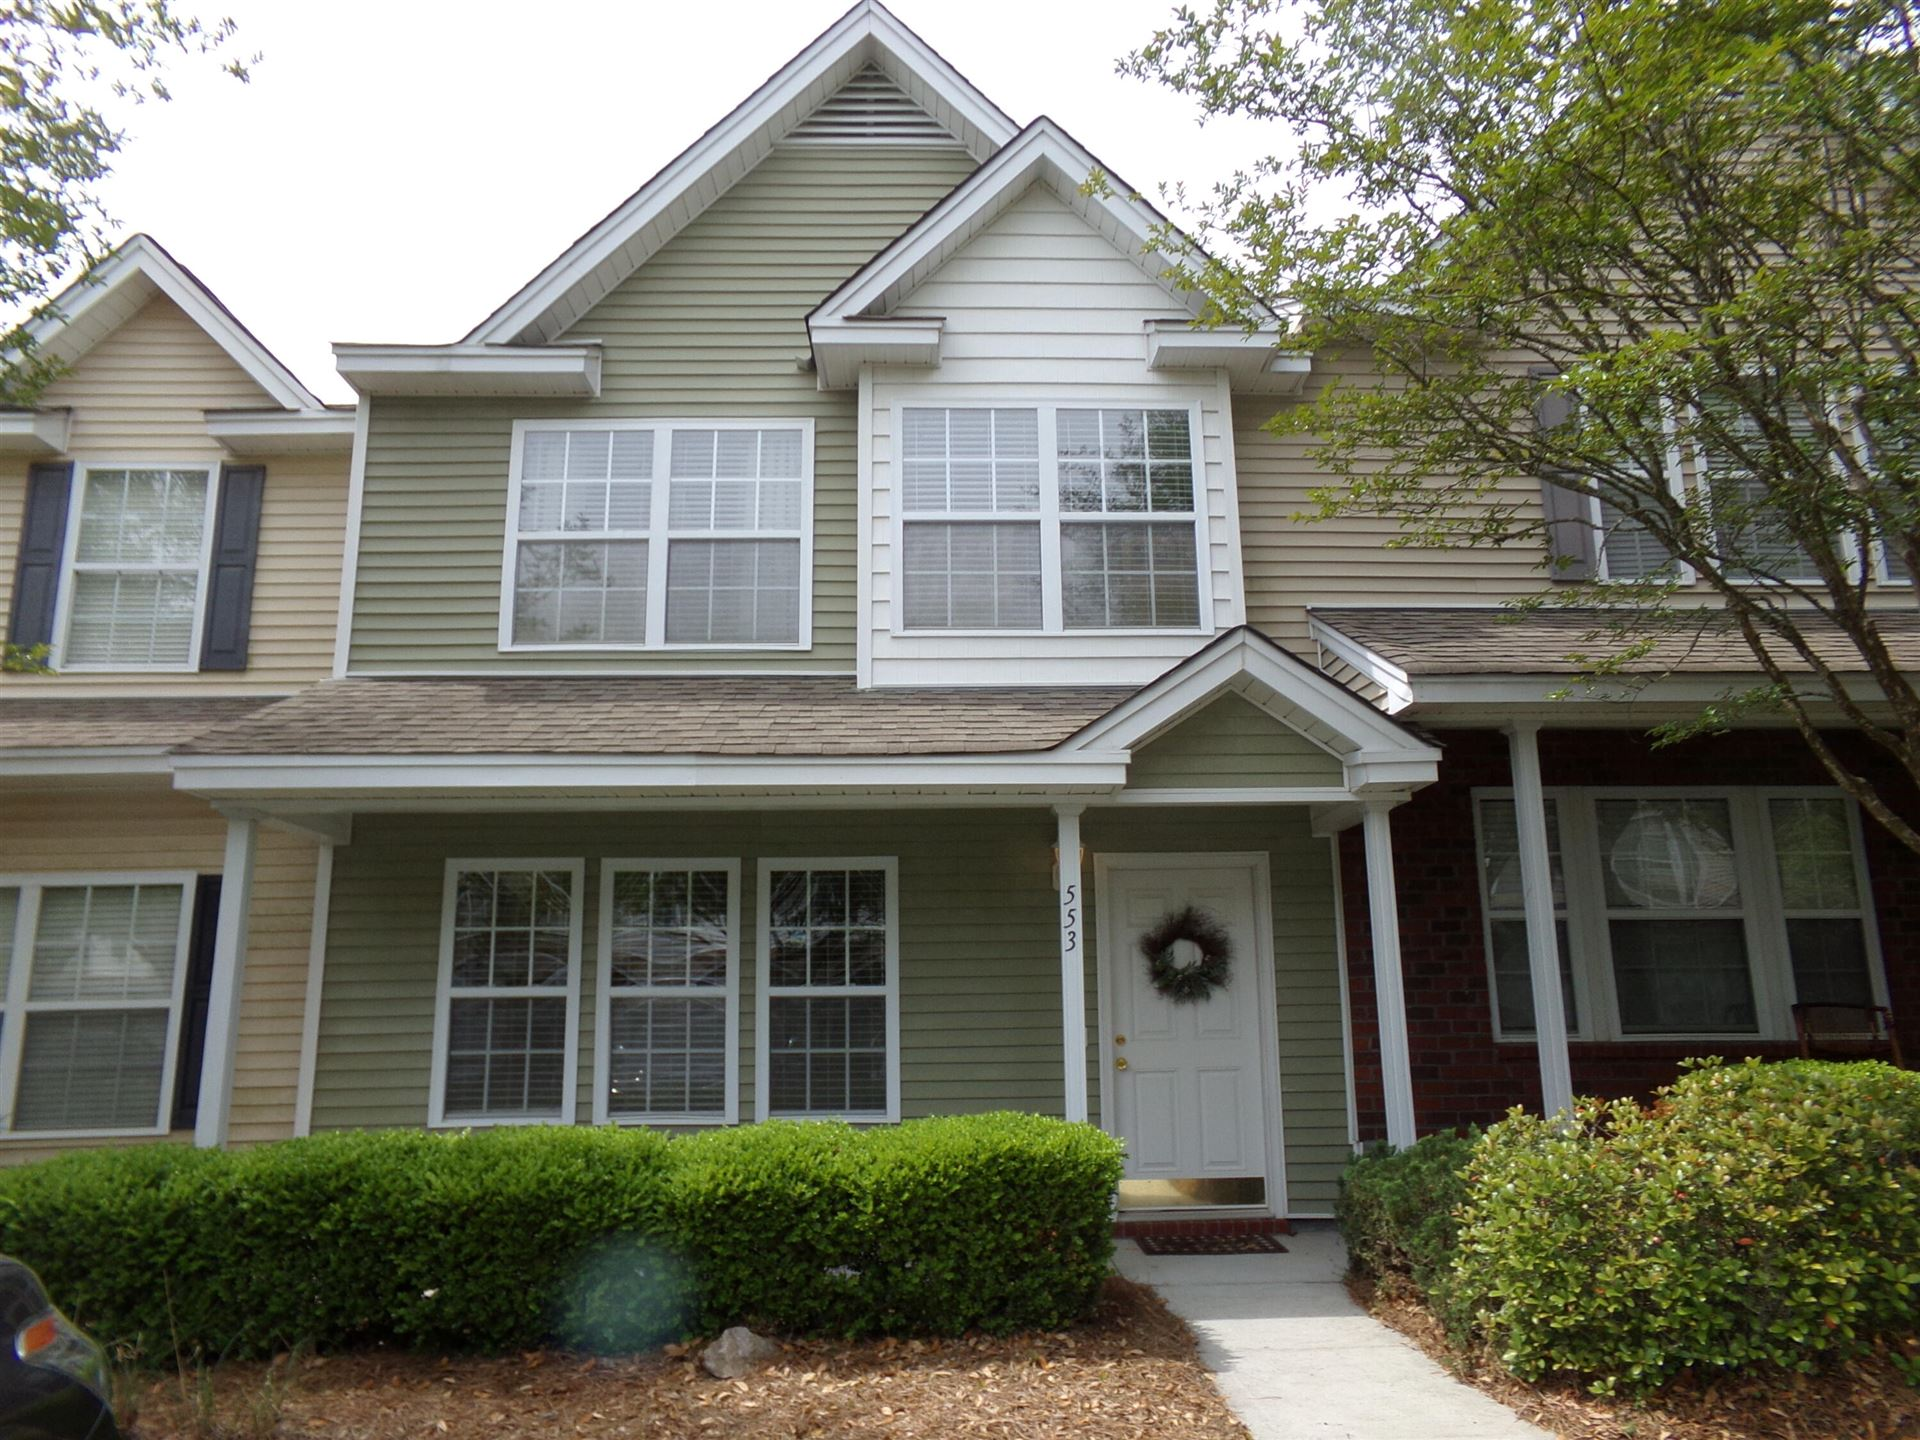 Photo of 553 Tayrn Drive, Wando, SC 29492 (MLS # 21010237)